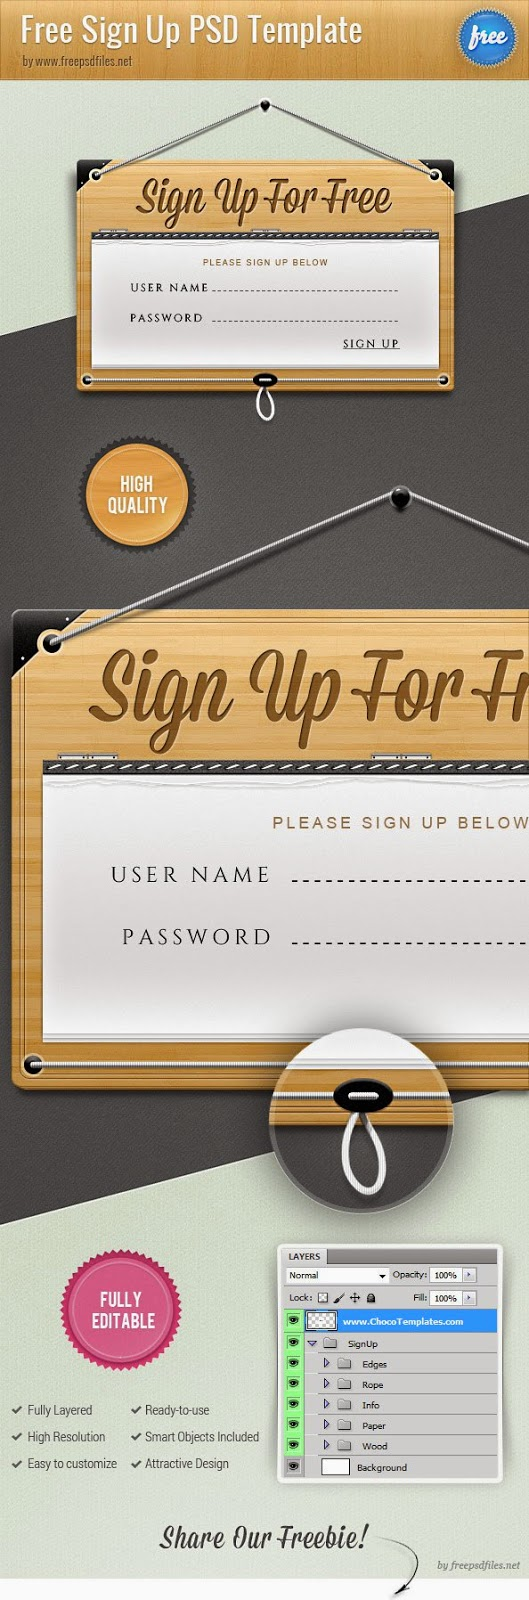 Sign Up Form Template PSD